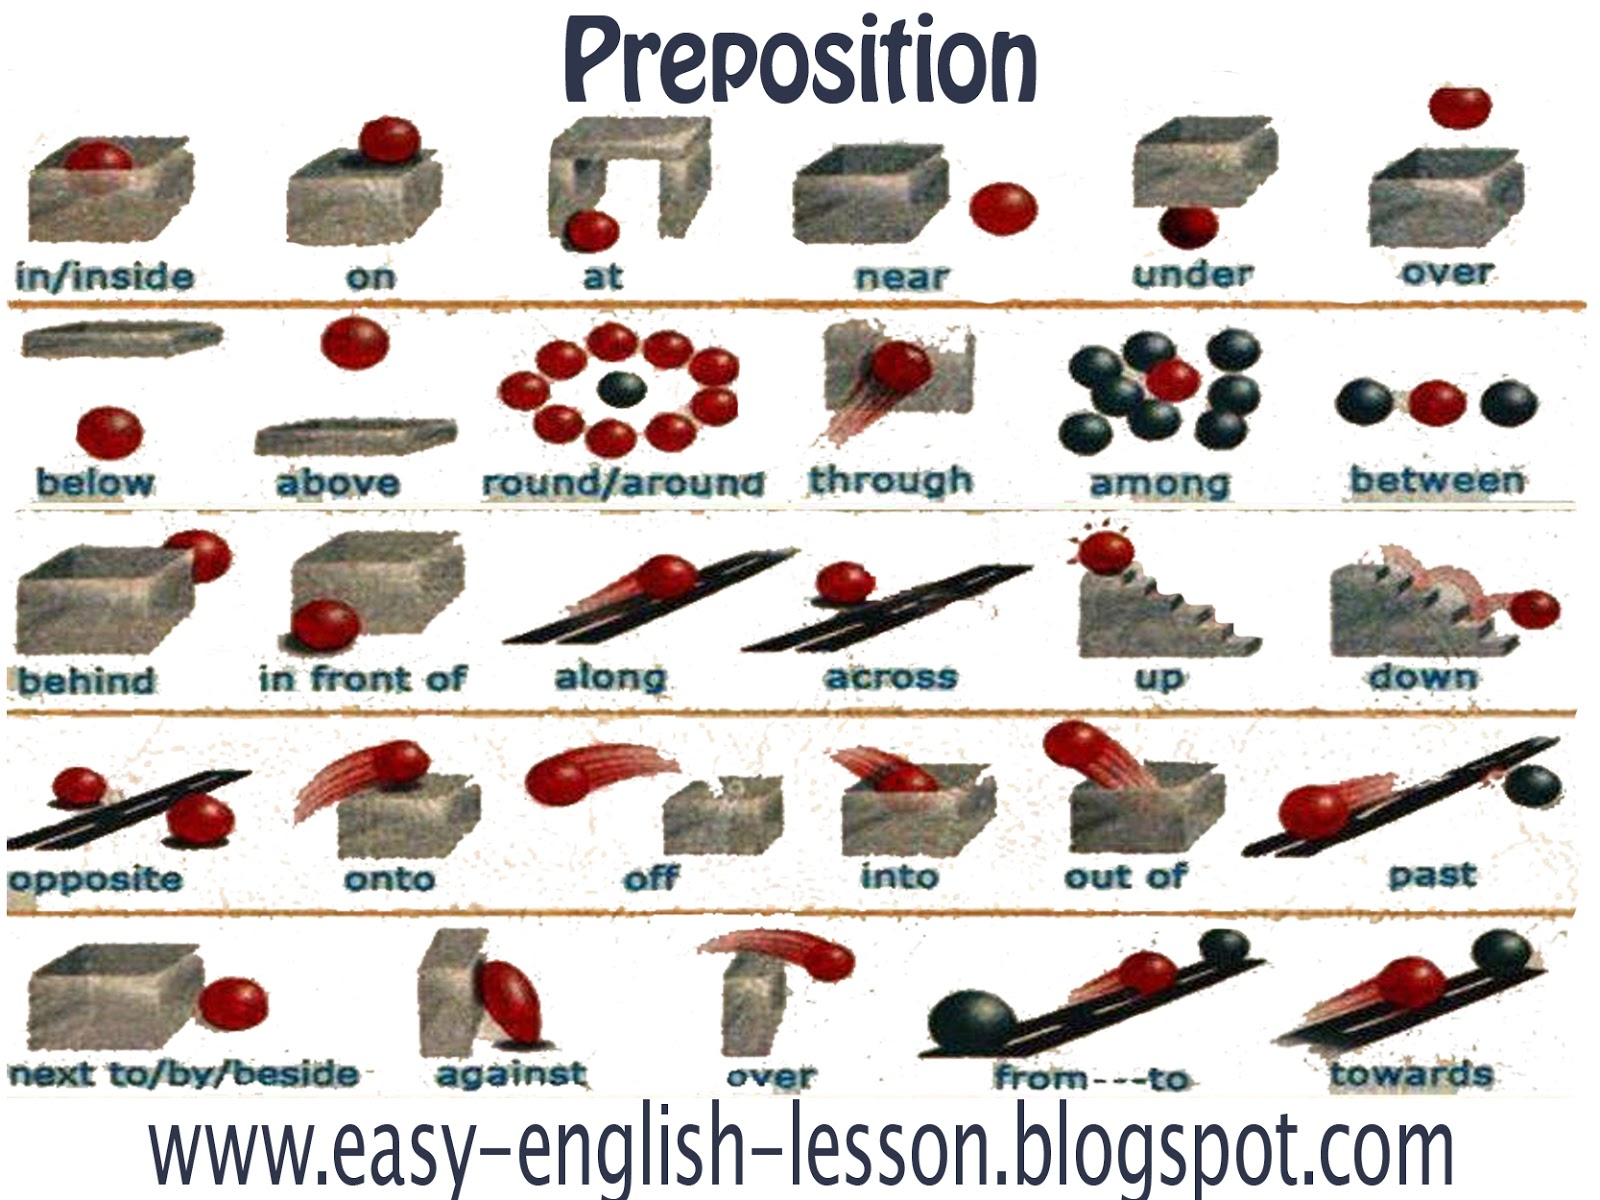 Position Of Preposition In A Sentence With Image